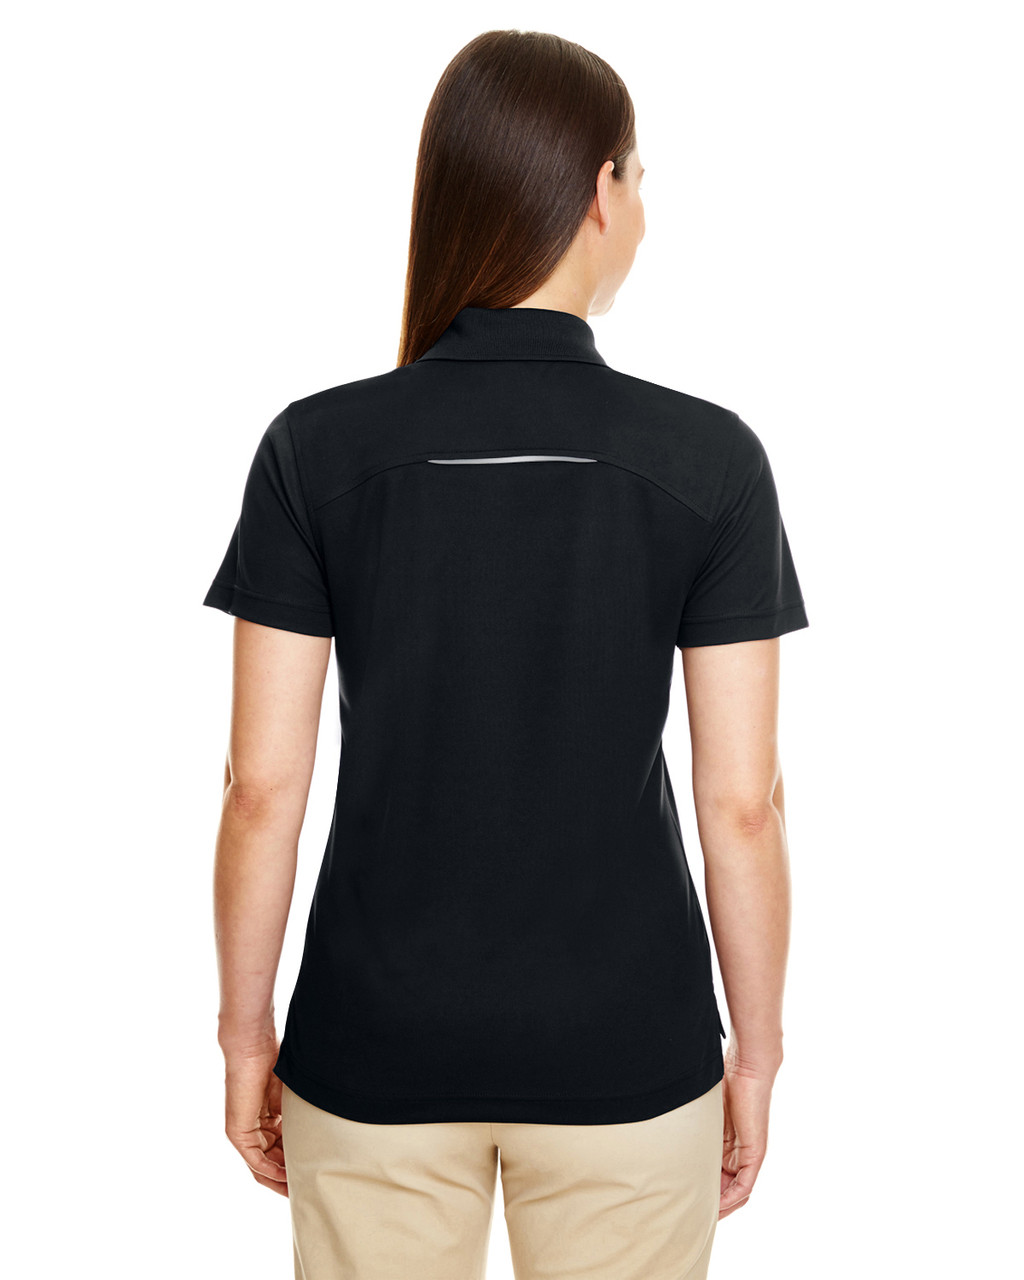 Black - Back 78181R Ash City - Core 365 Ladies' Radiant Performance Piqué Polo Shirt with Reflective Piping | Blankclothing.ca